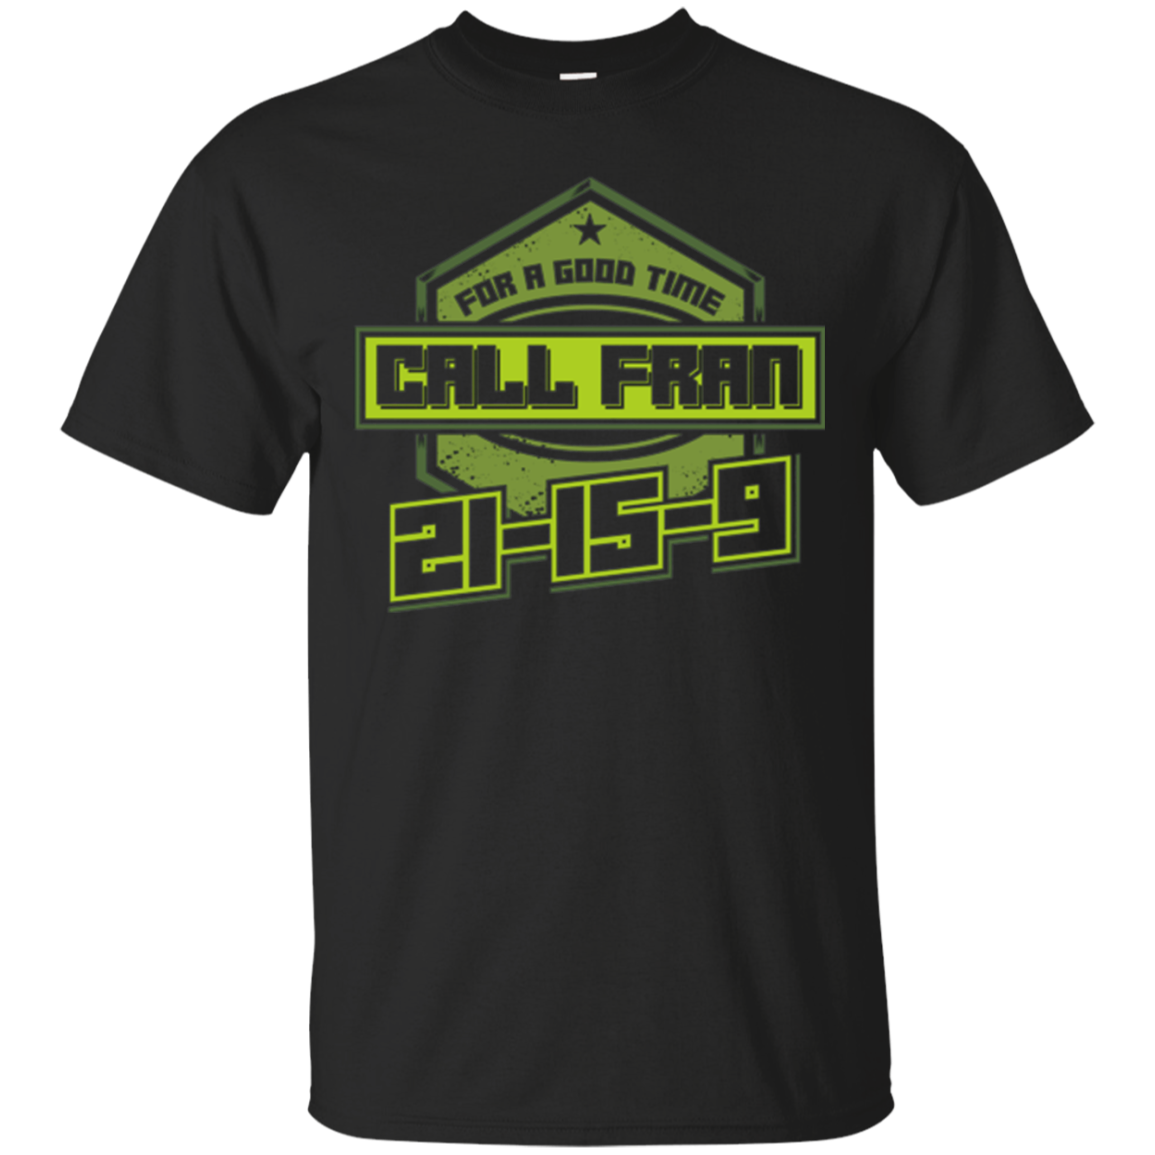 For A Good Time Call Fran, Funny Classic Cross Fit Wod Shirt